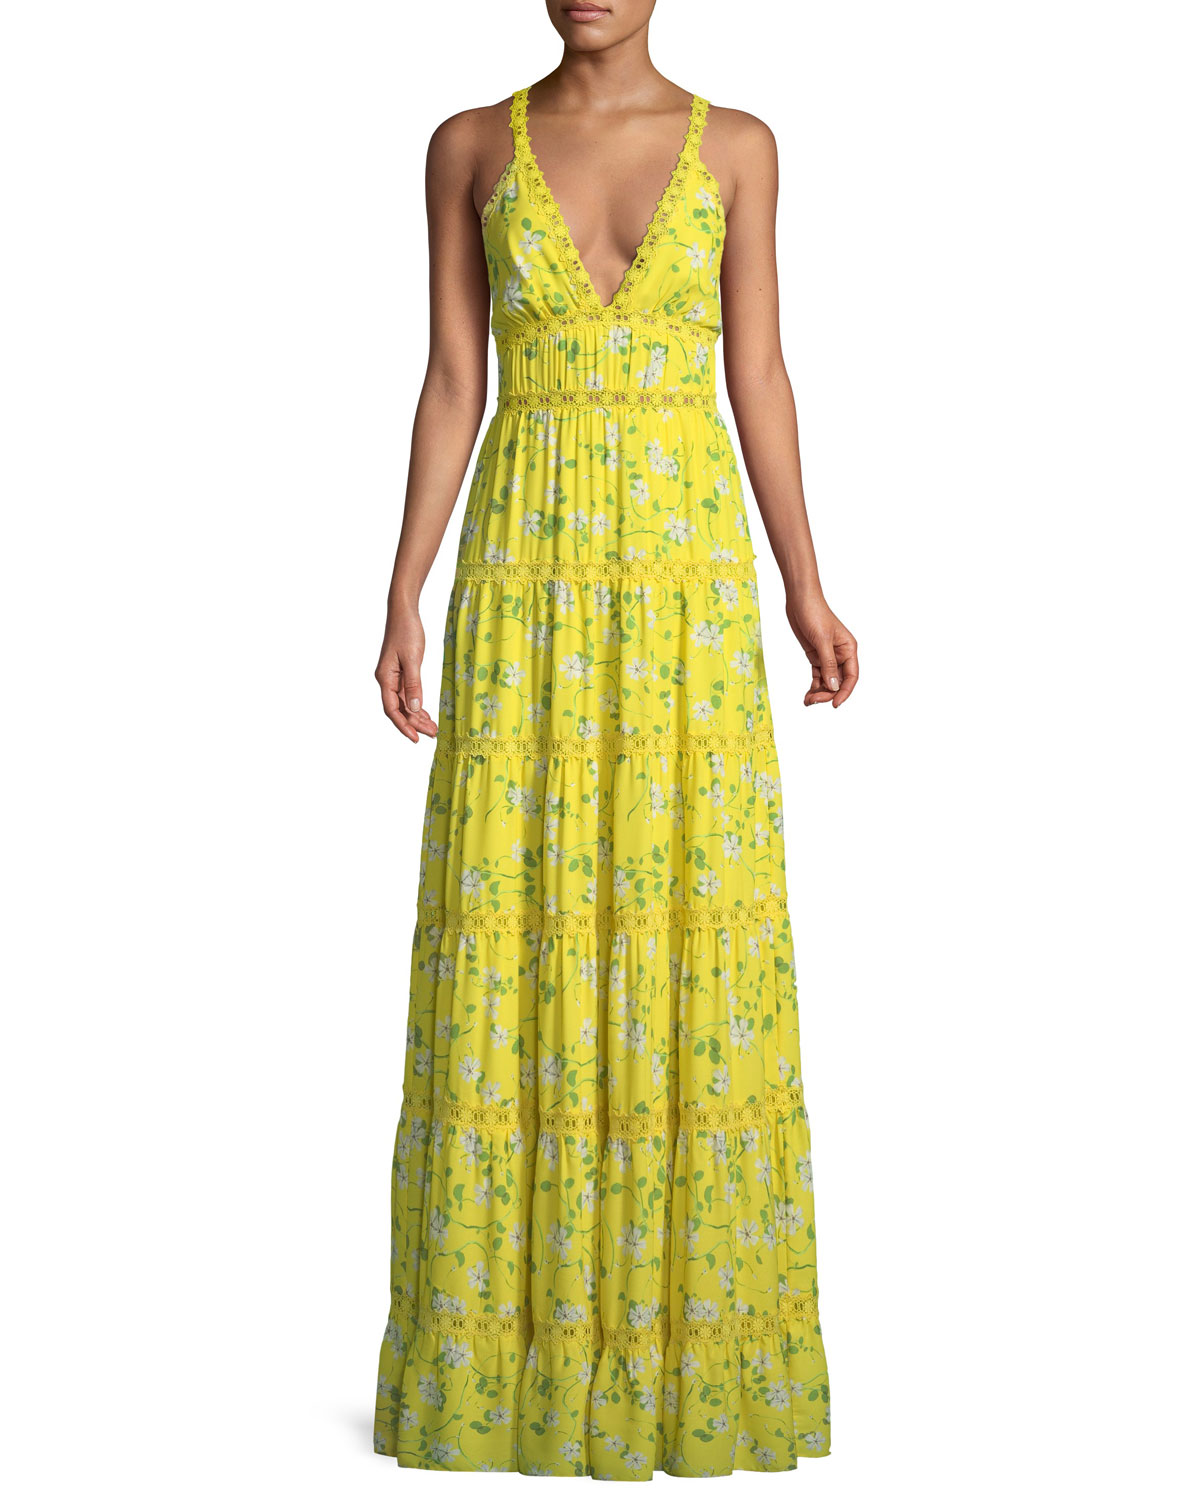 Karolina Crochet-trimmed Floral-print Chiffon Maxi Dress - Bright yellow Alice & Olivia GNMM3Vazs